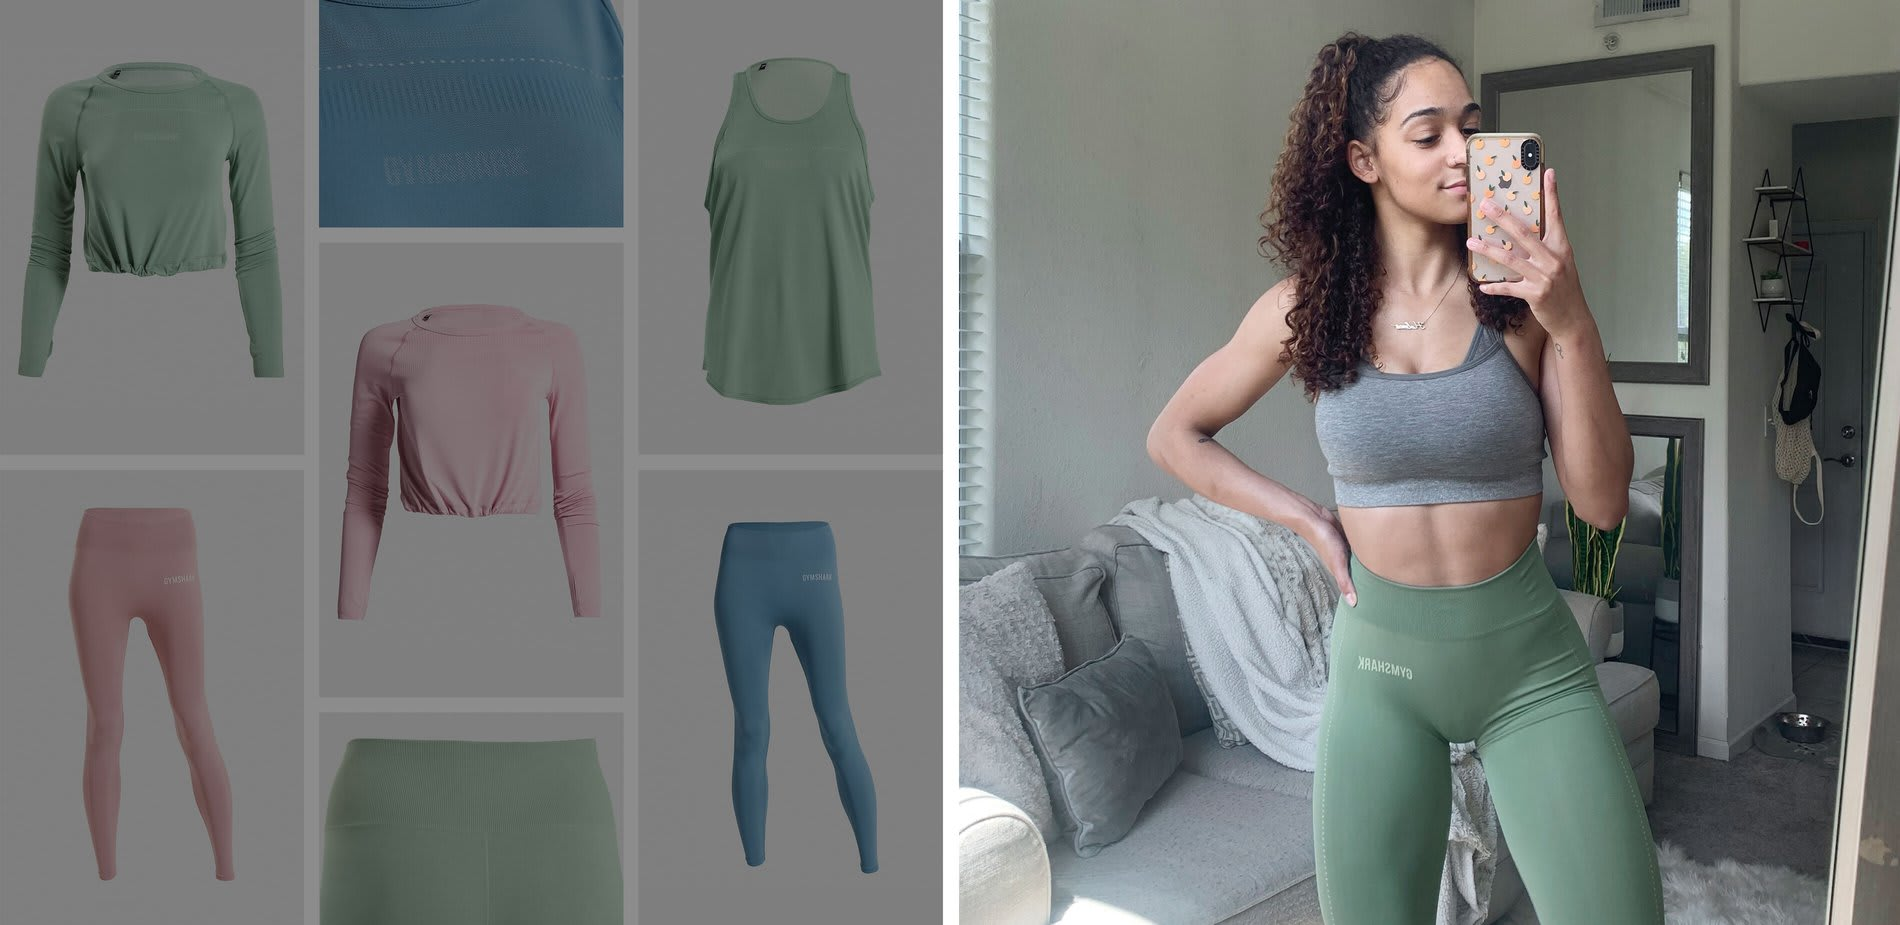 A split banner made up of a collage of ecom images and also an Athlete wearing the Breeze Lightweight Seamless Collection.